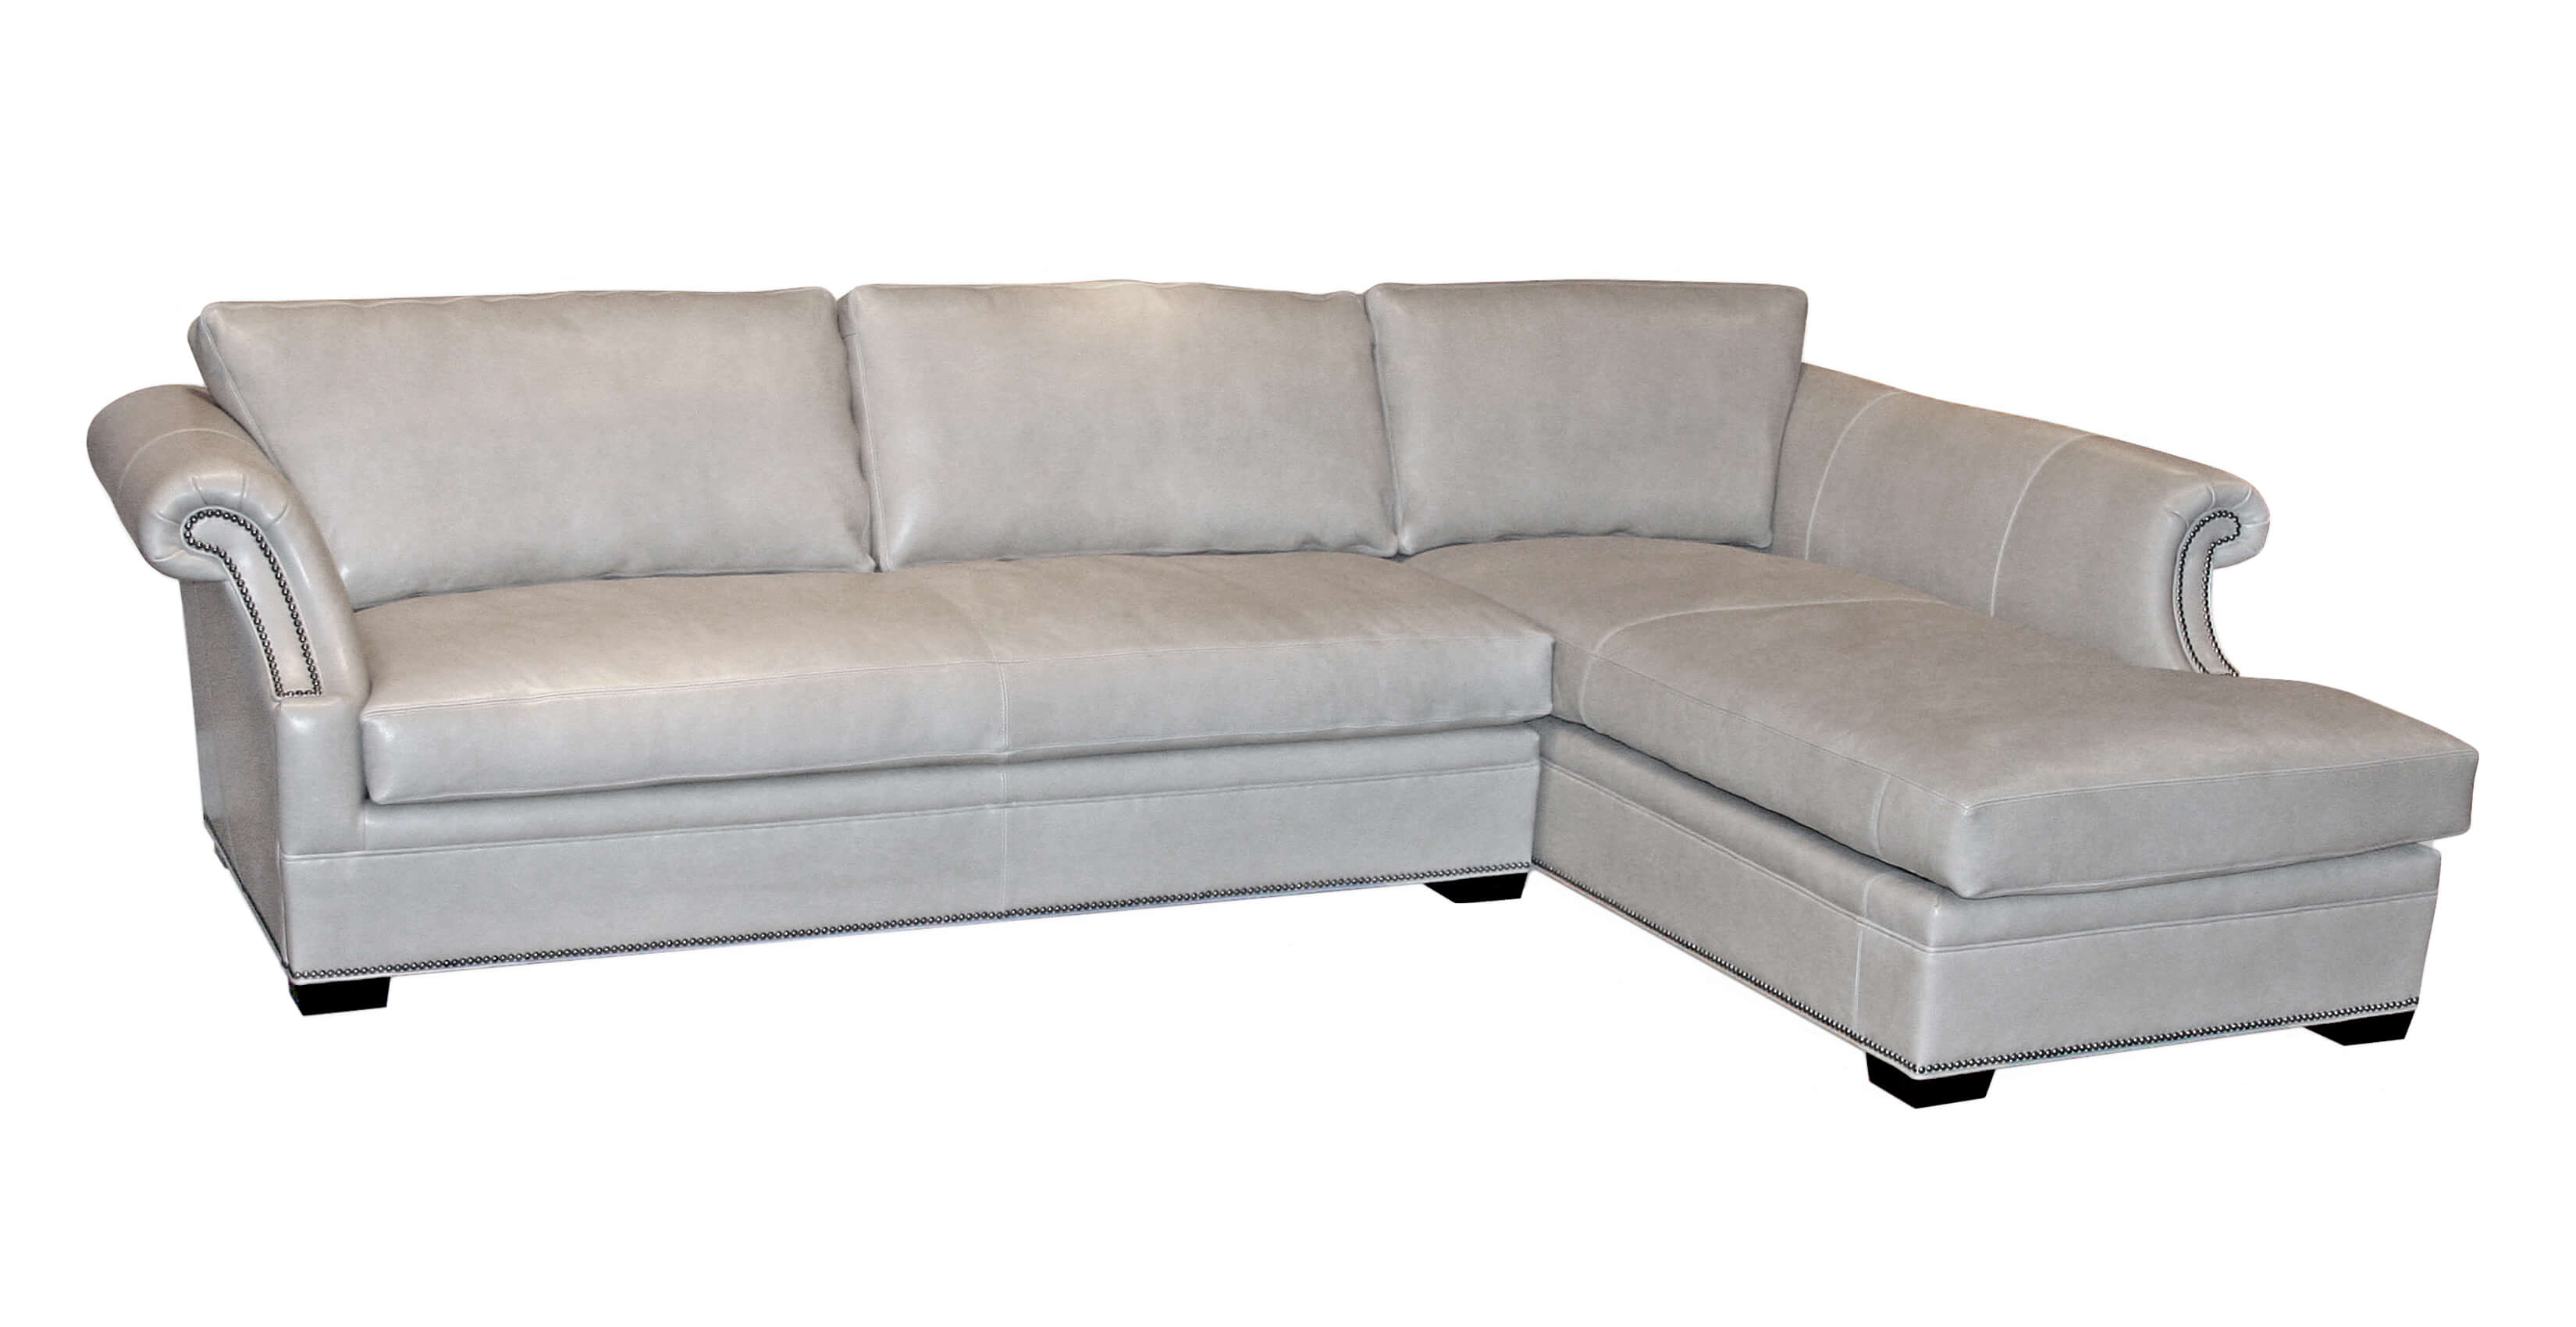 classic leather cardiff sectional. Black Bedroom Furniture Sets. Home Design Ideas